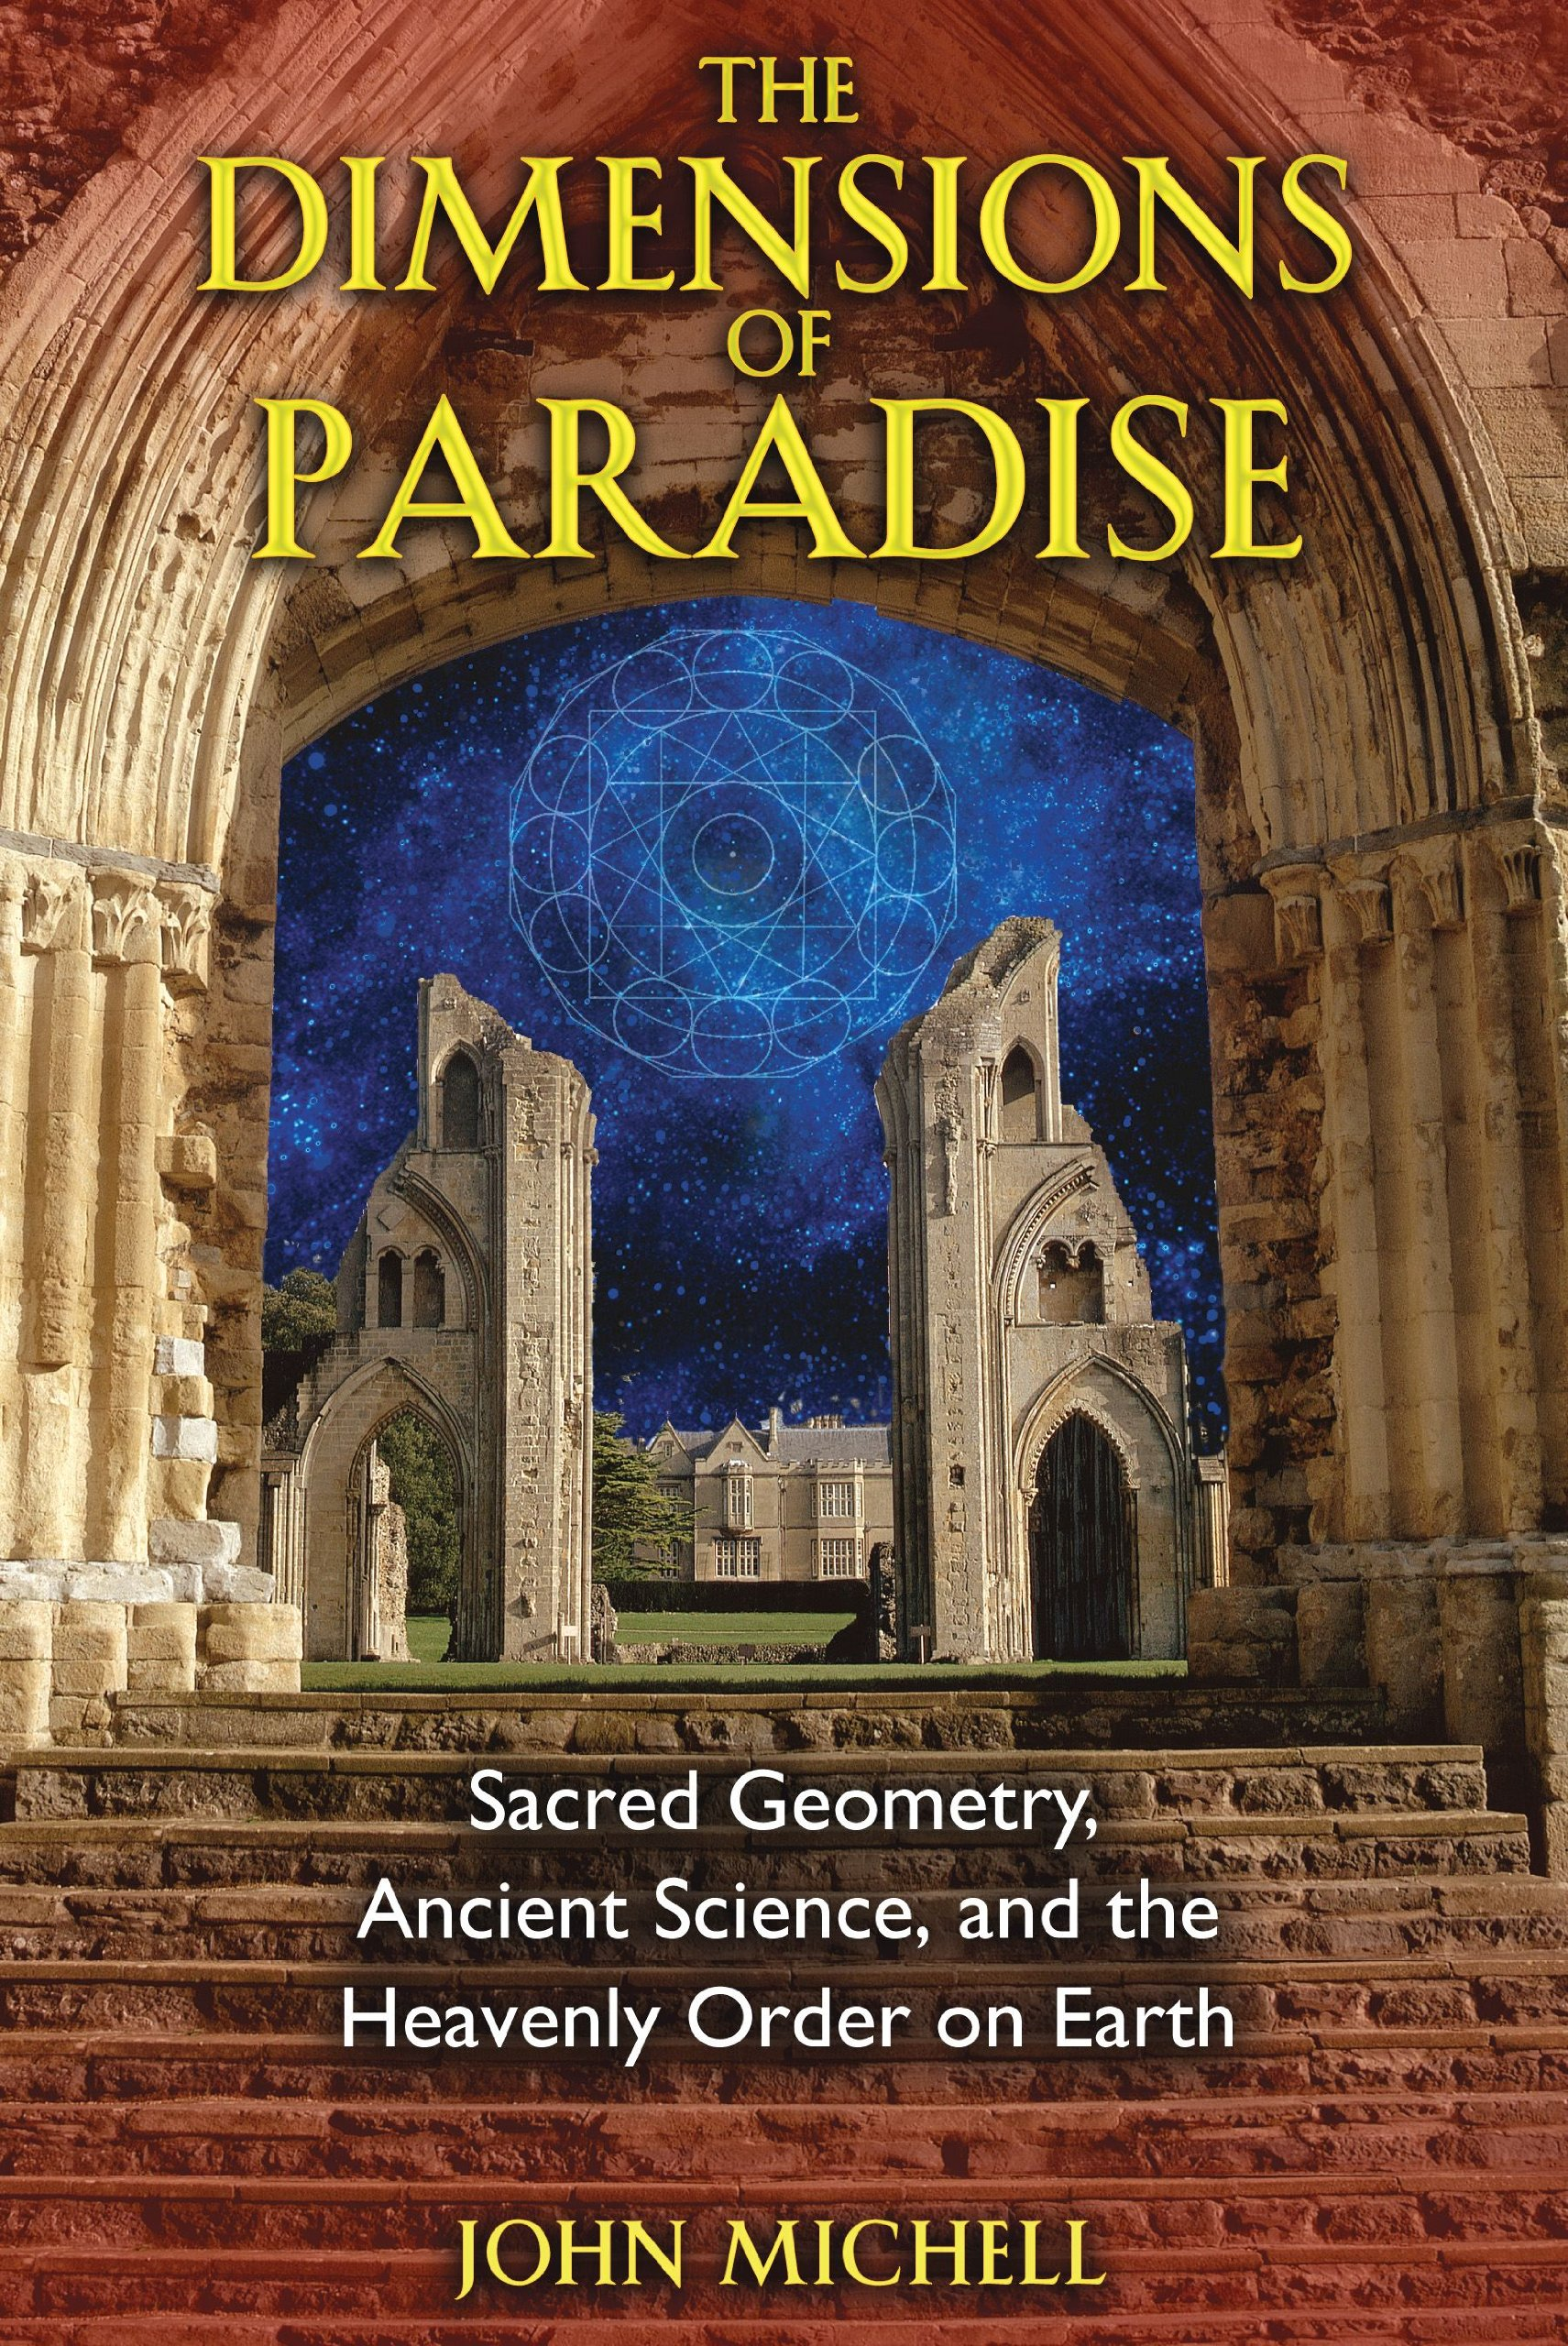 Image result for the dimensions of paradise